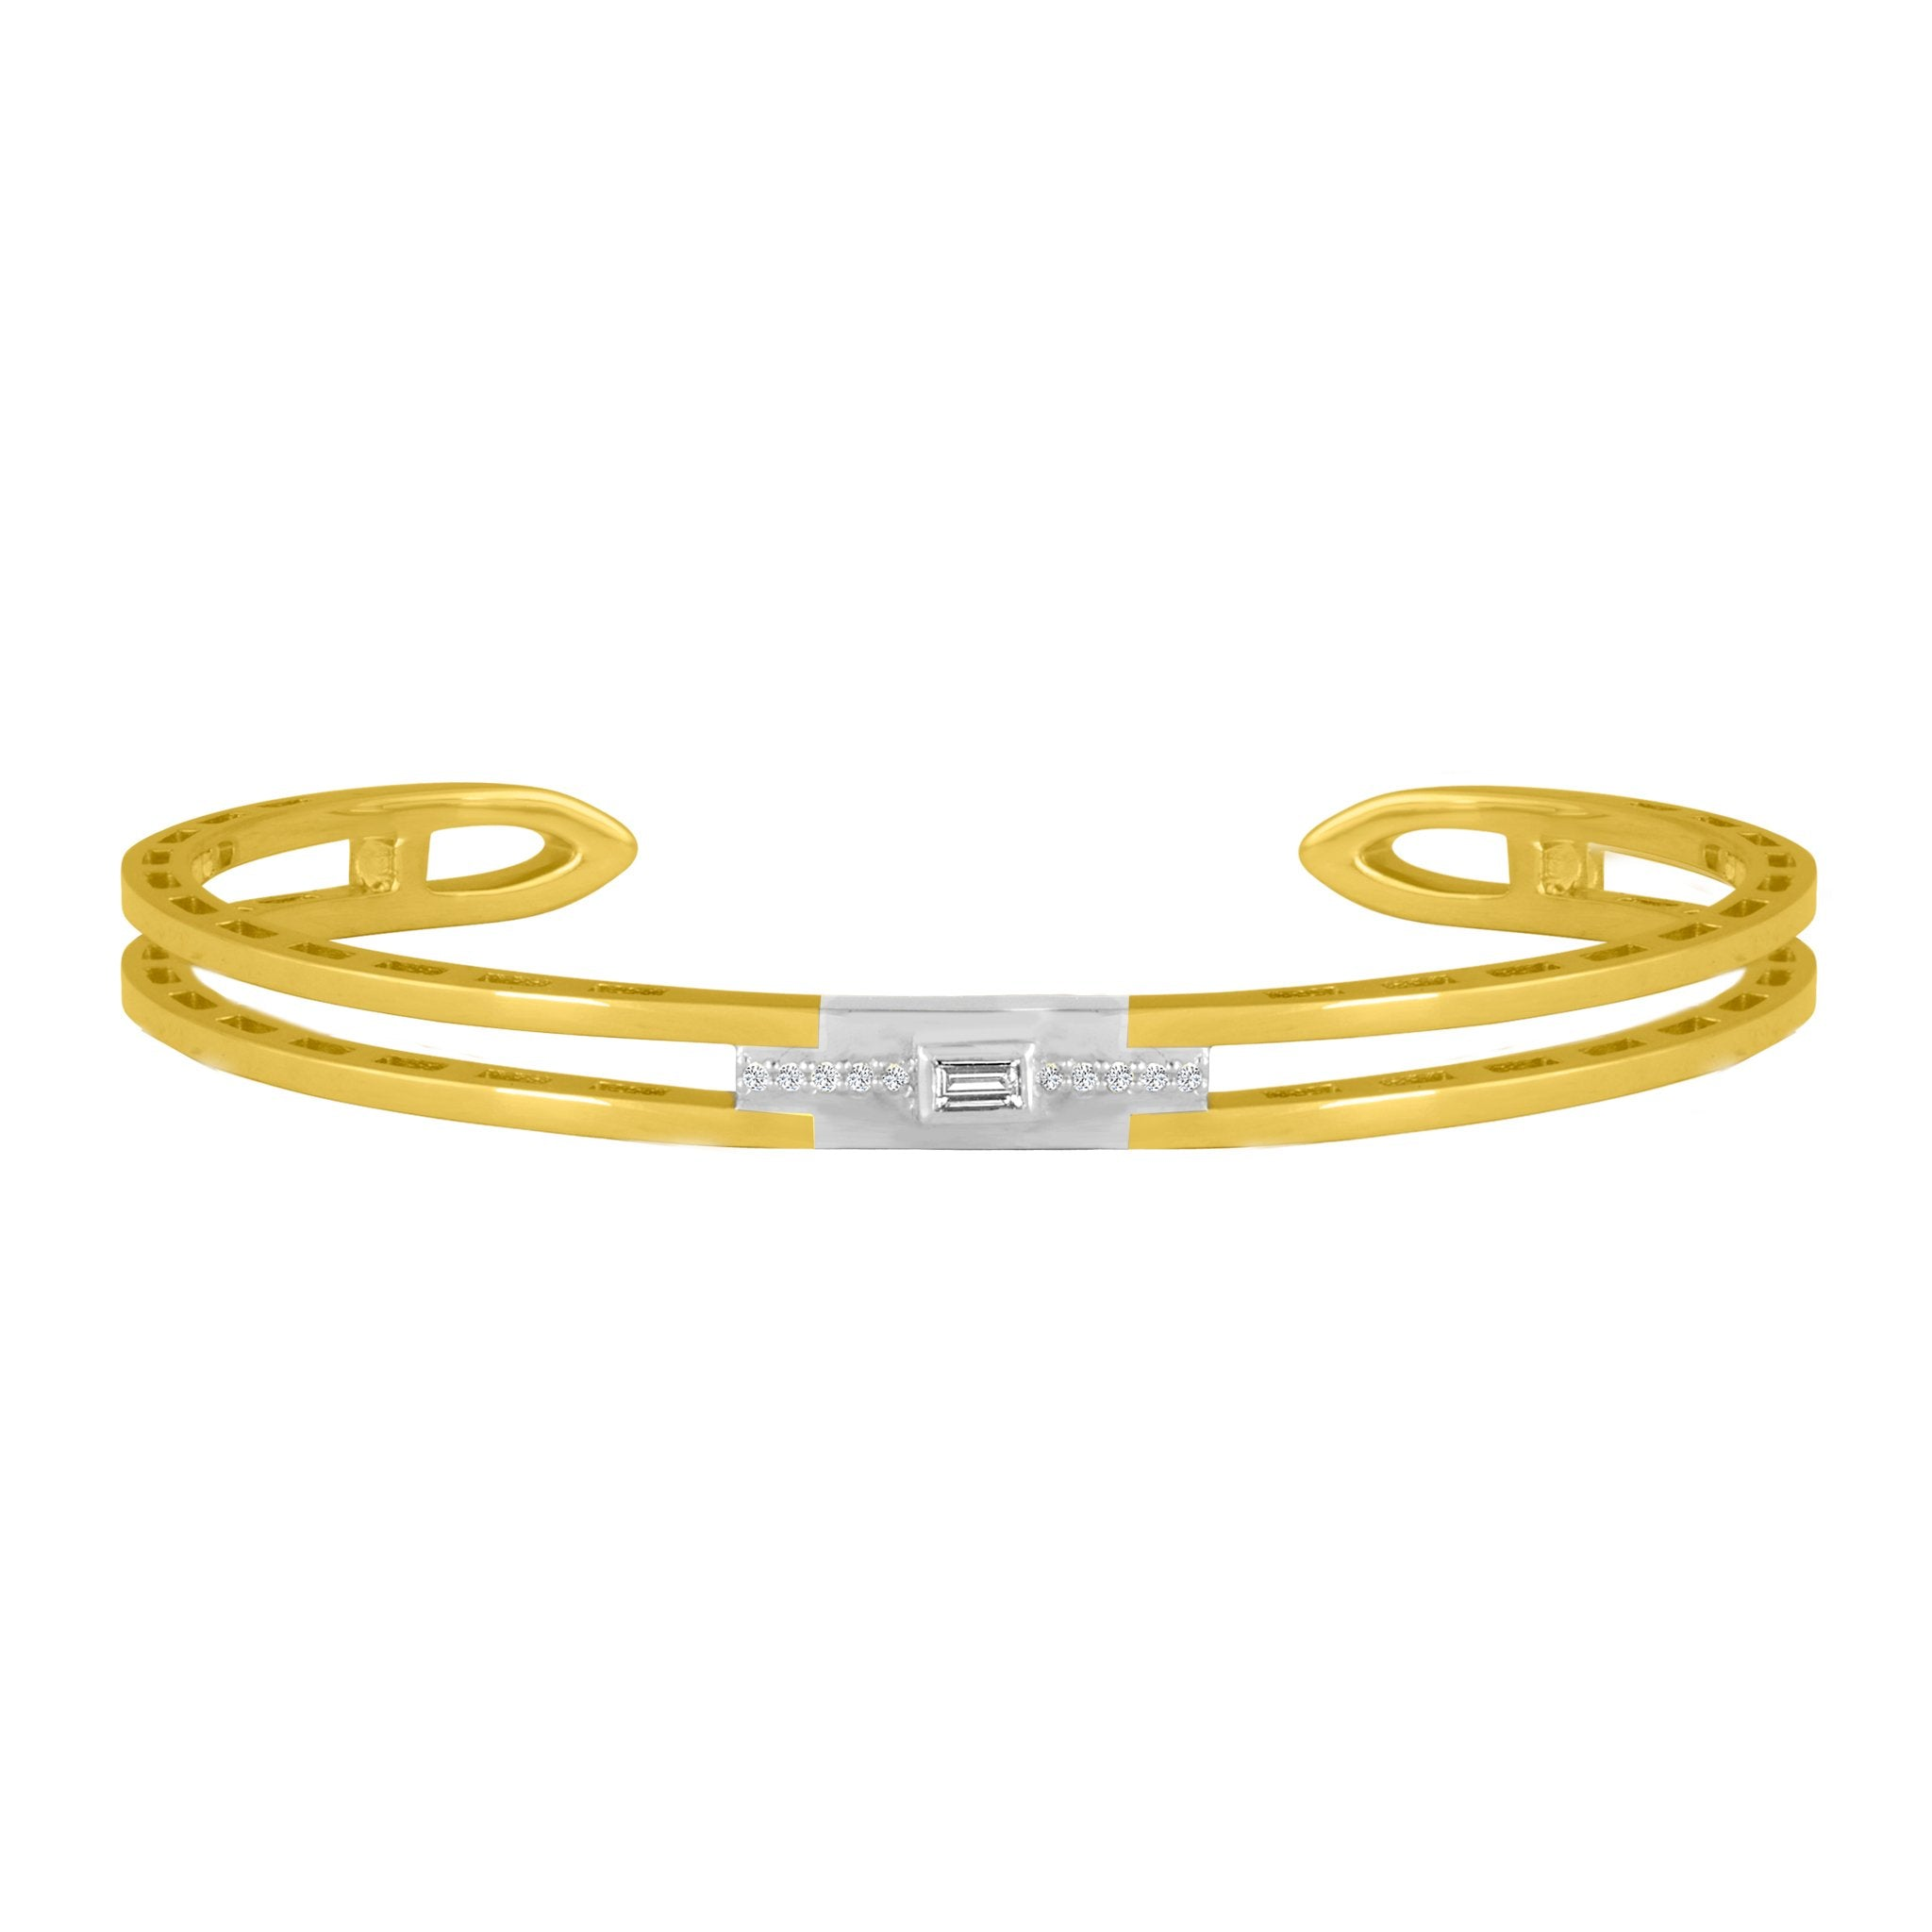 Edge Cuff Bracelet: 18k Yellow Gold, 18k White Gold, Round Diamonds & Baguette